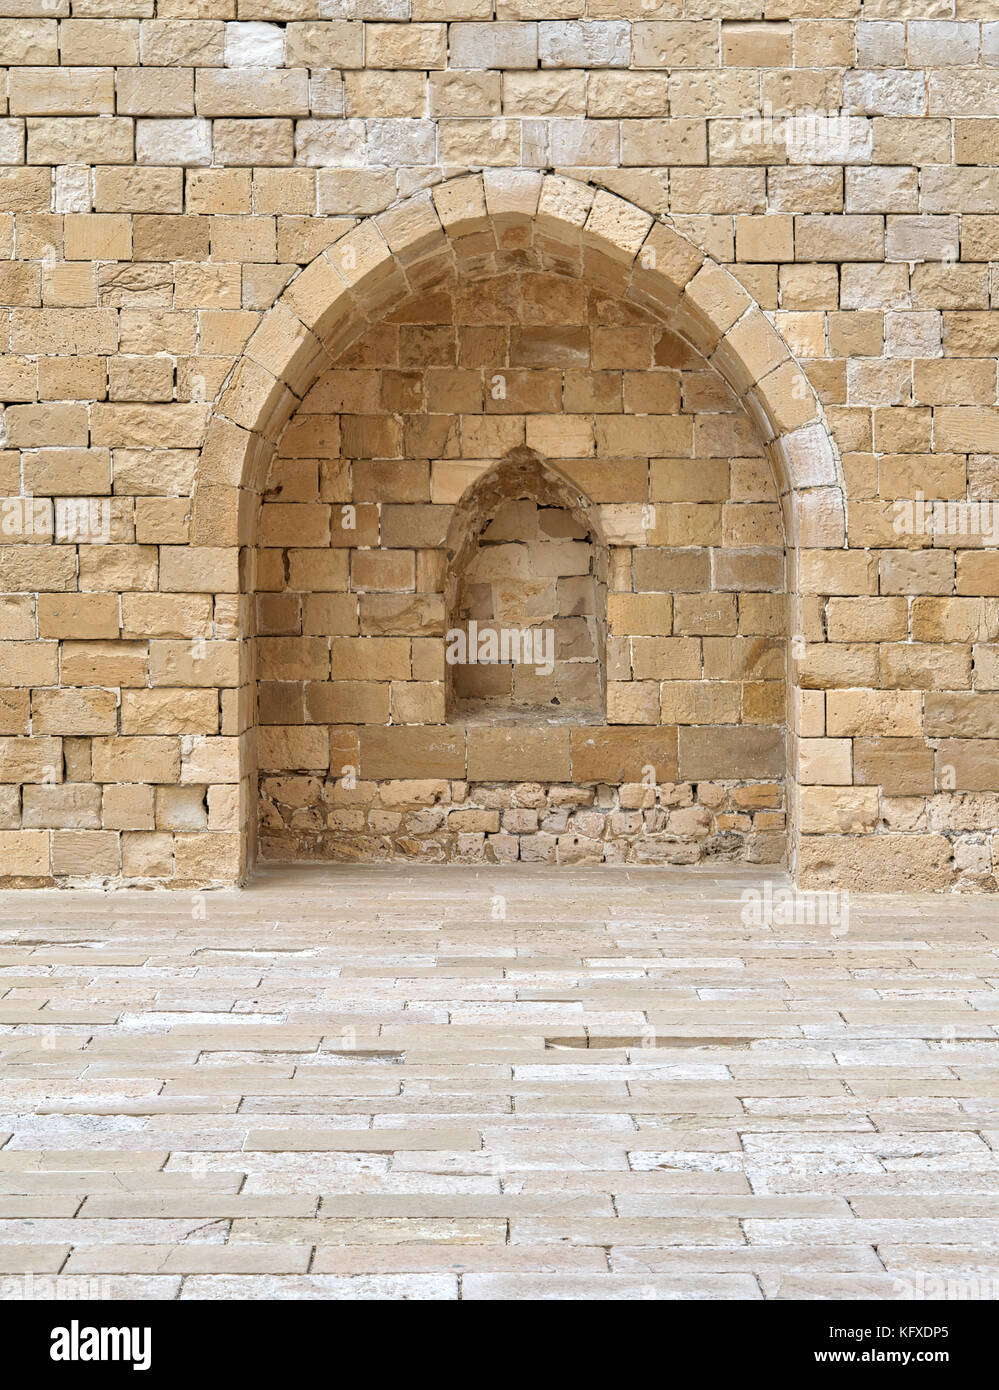 Stone wall with embedded niche, Exterior wall at the corridors surrounding Alexandria castle - Stock Image